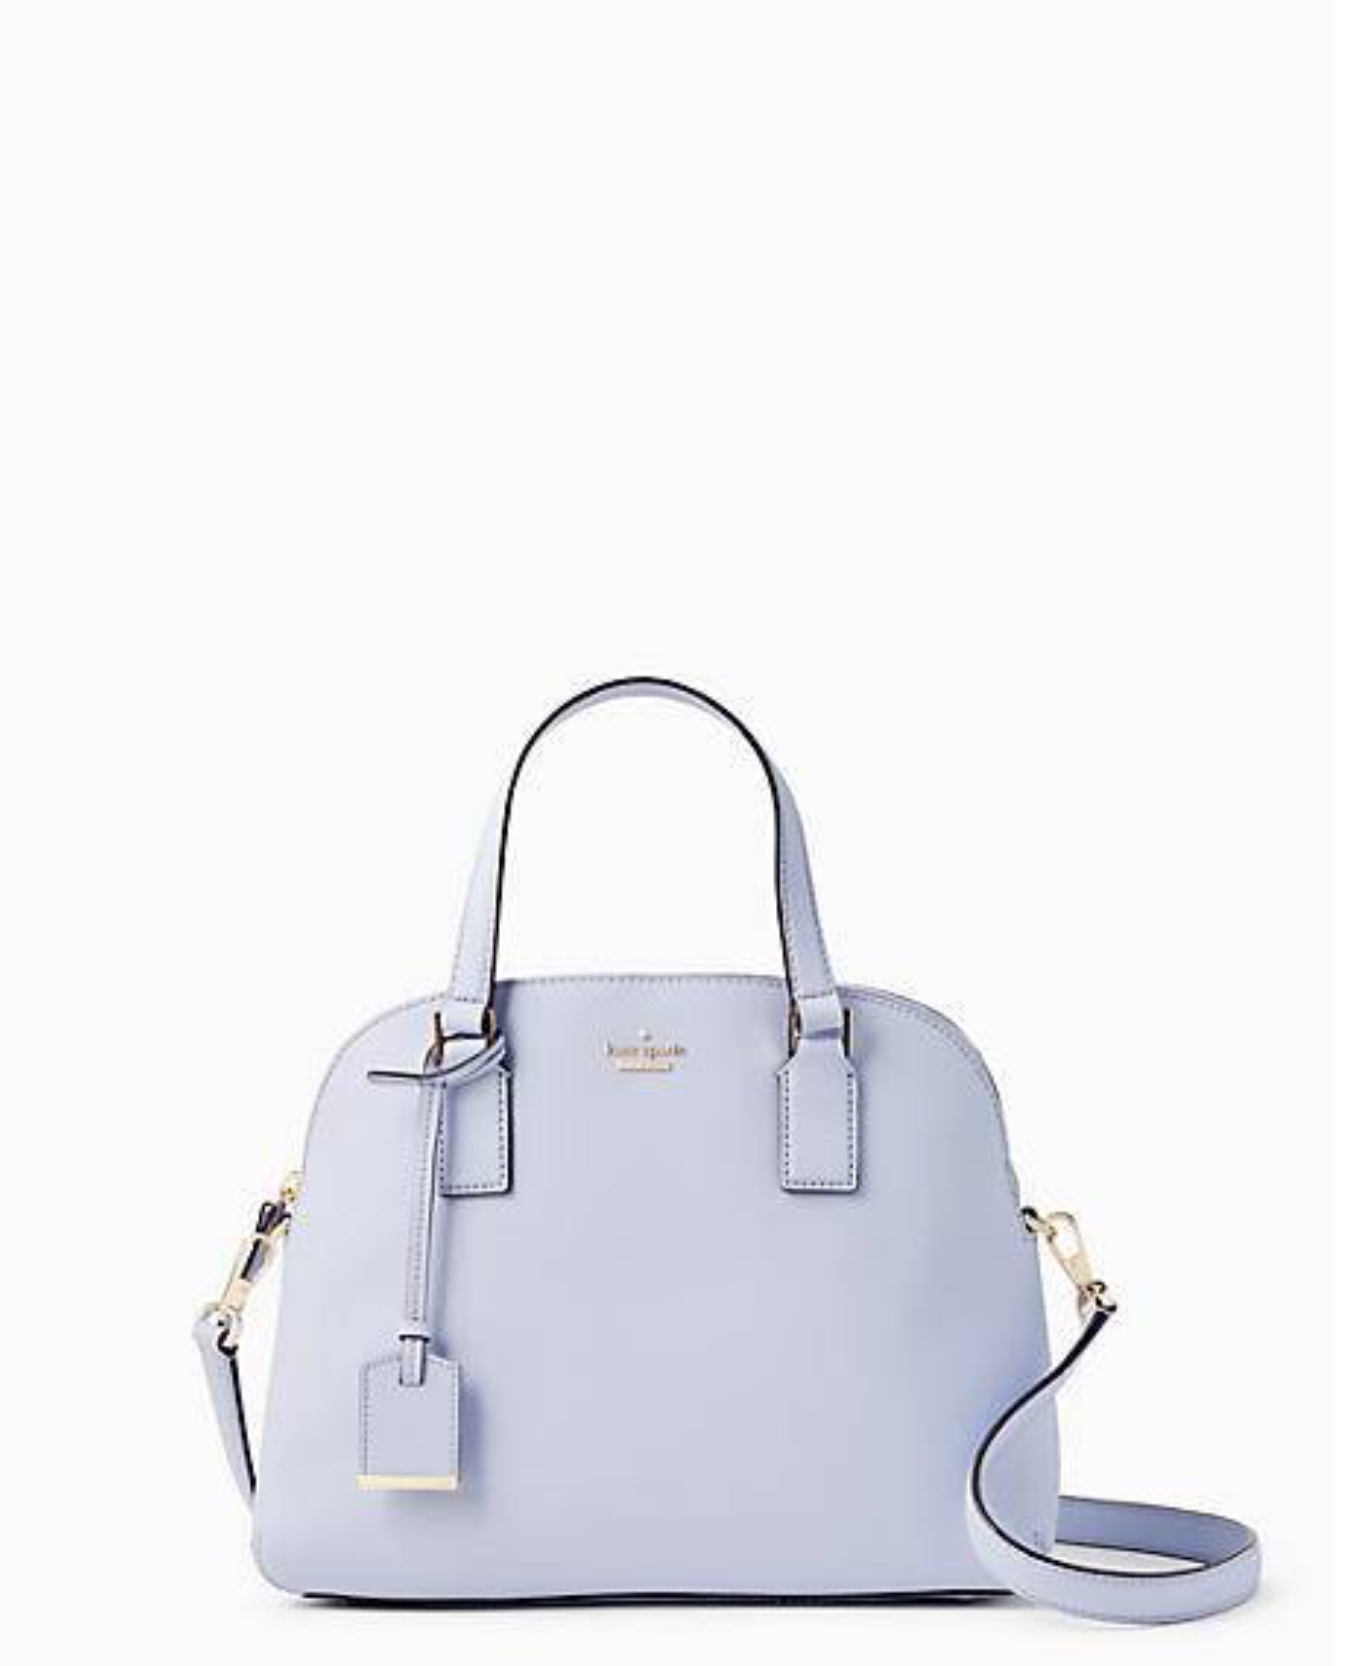 From Kate Spade.com